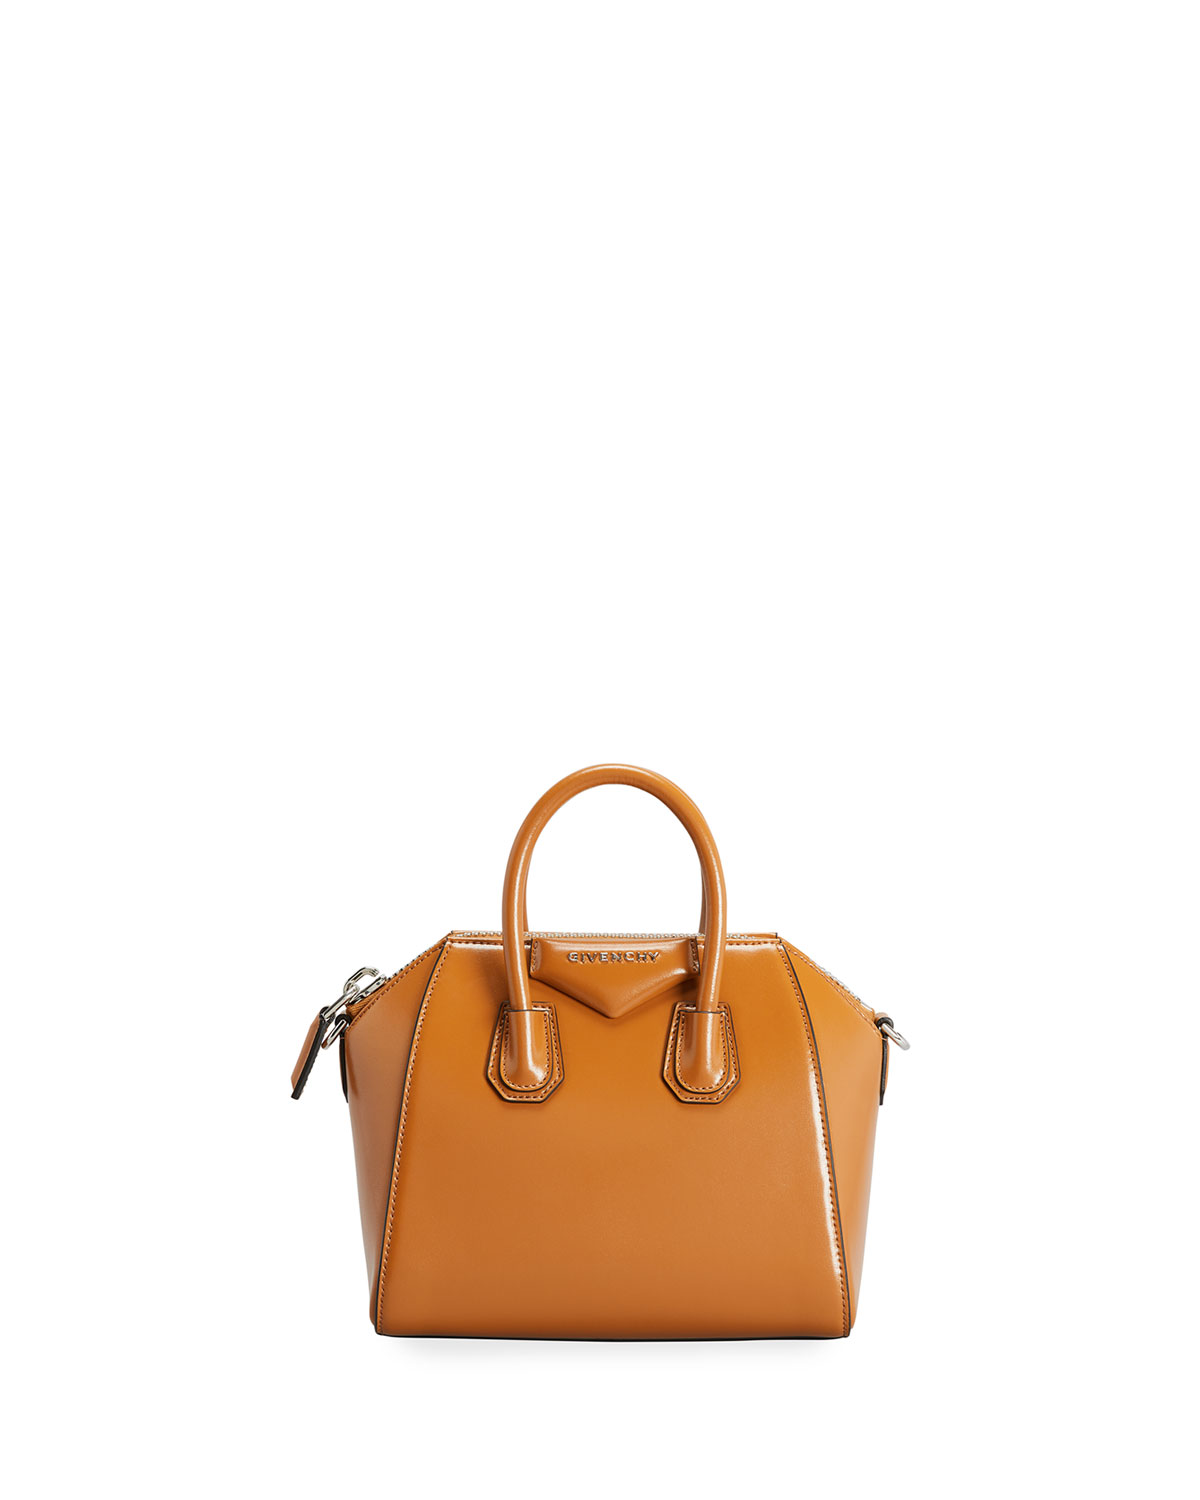 ad83794ead0c Givenchy Antigona Mini Box Calfskin Satchel Bag